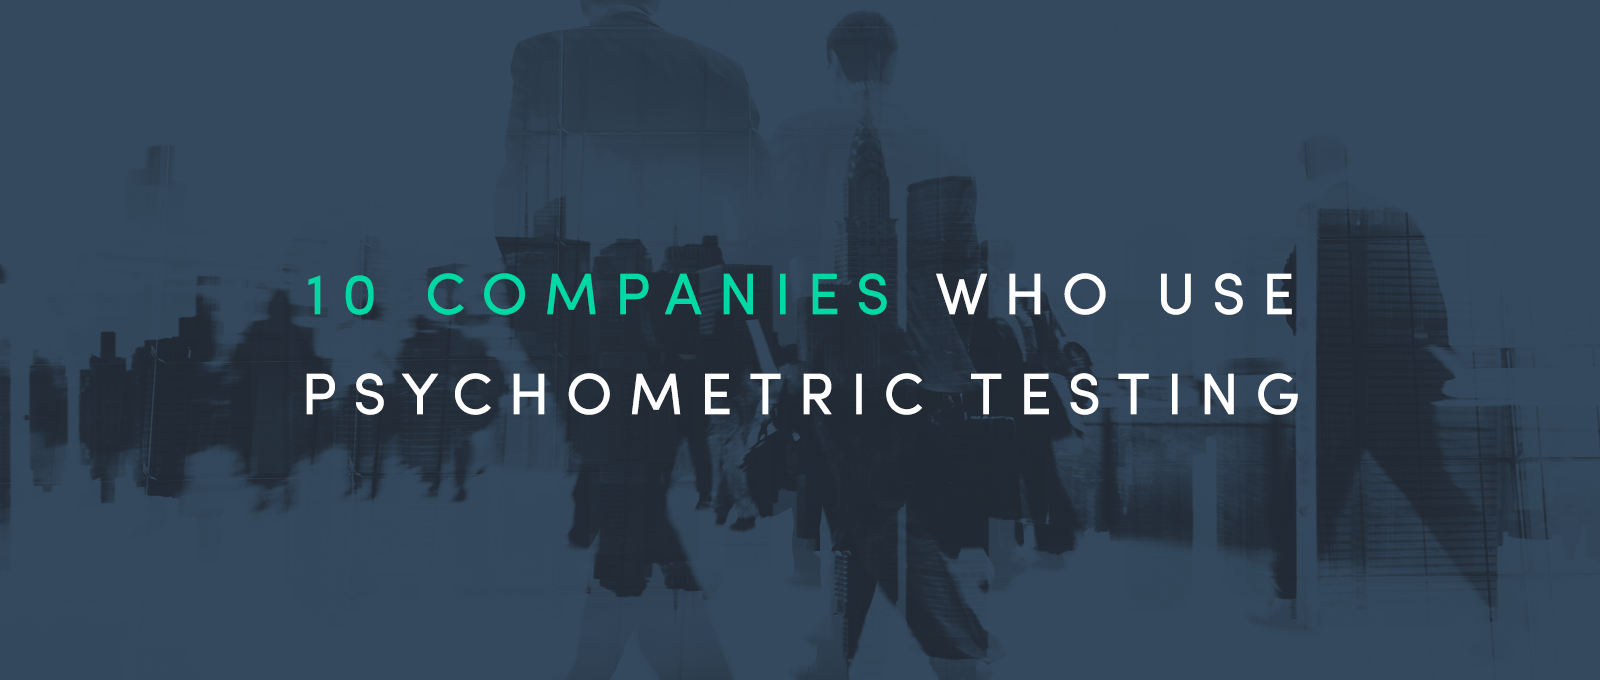 Usage of psychometric test in corporate